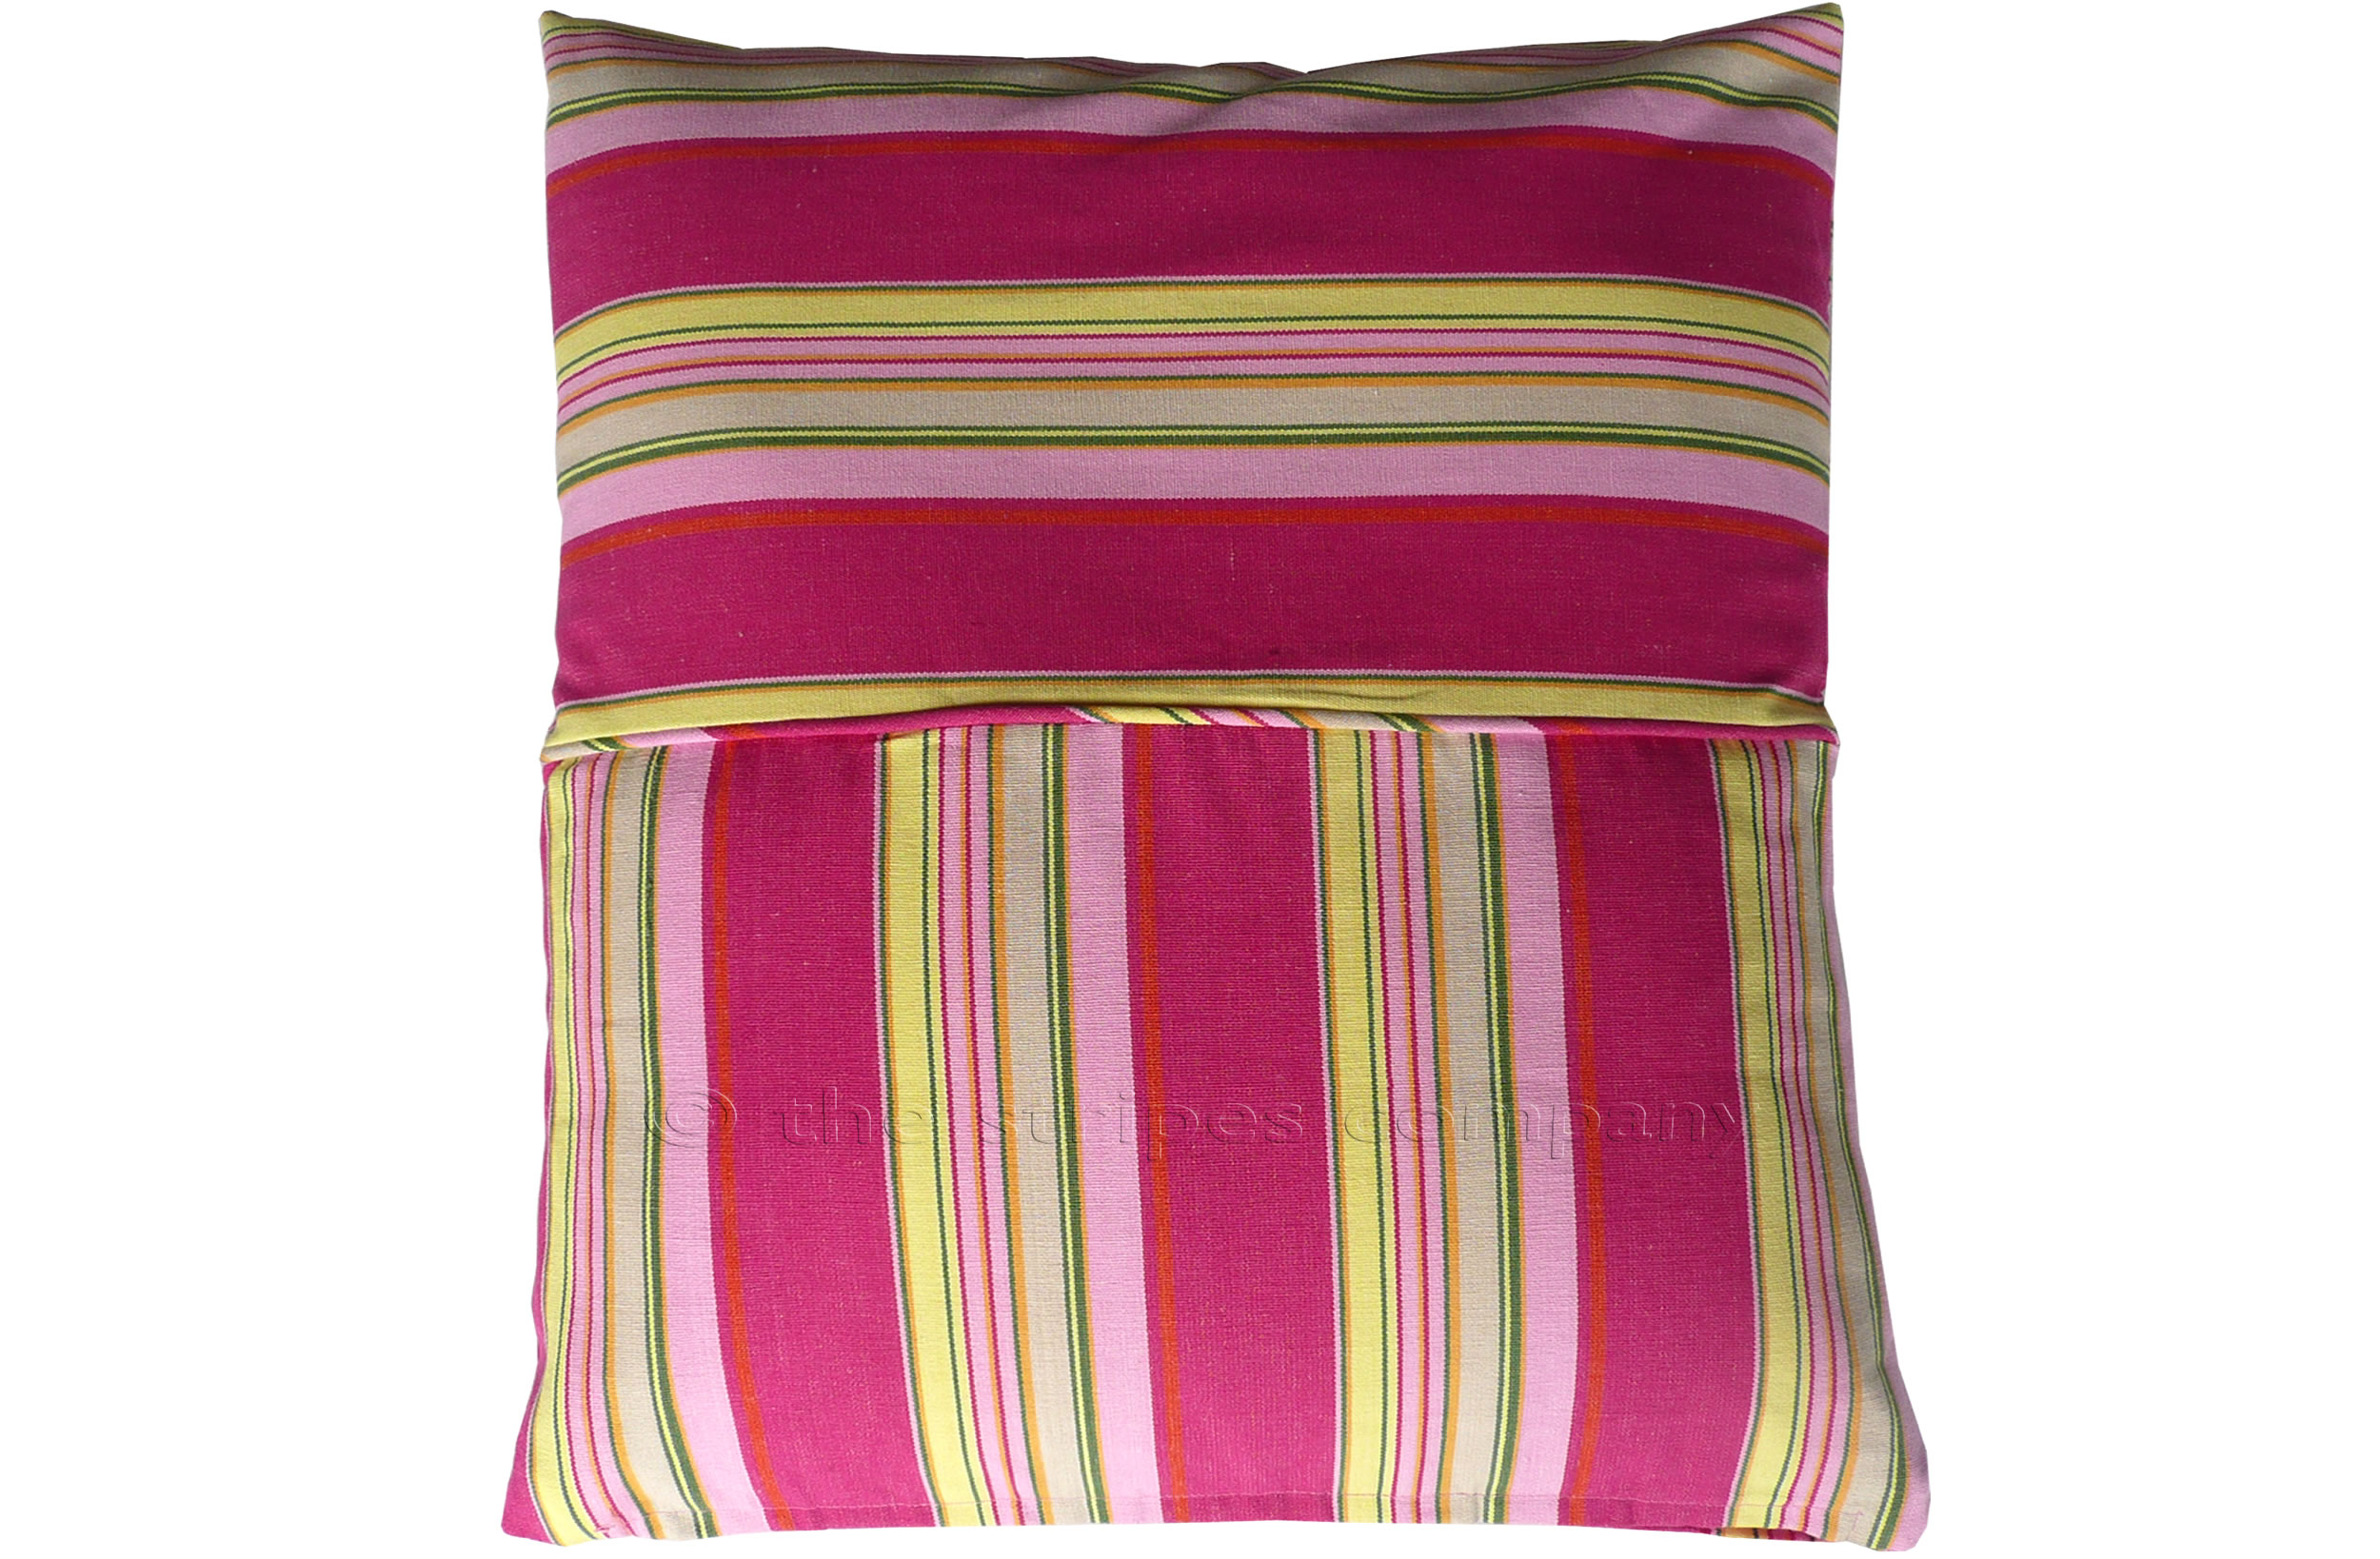 pink, lemon, yellow - Striped Piped Cushions | Square Piped Cushions